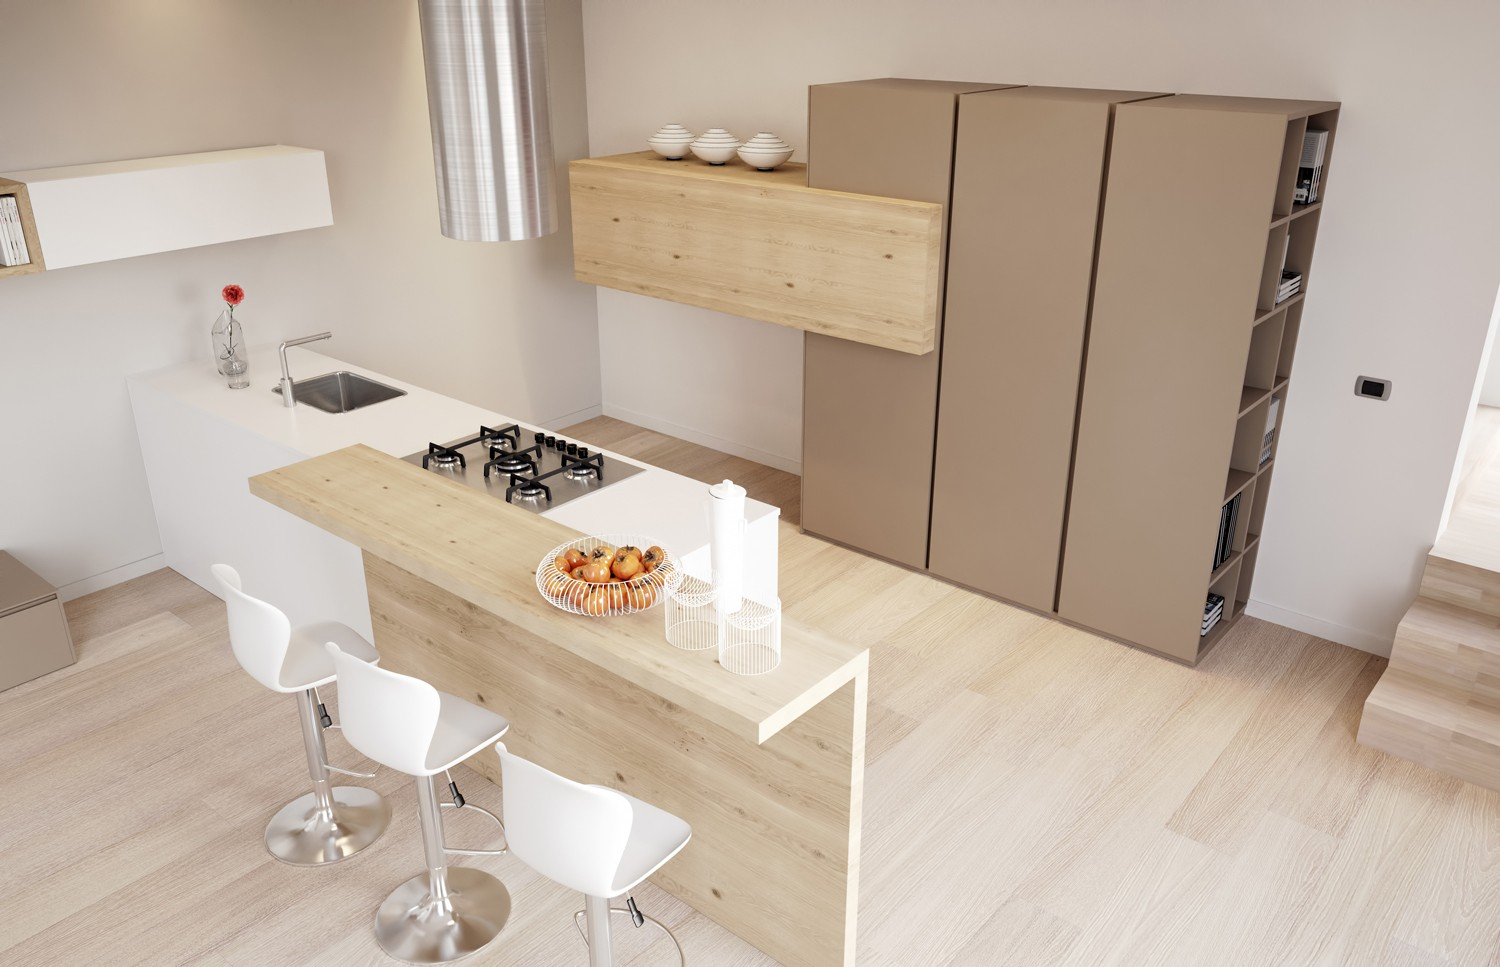 Cucina Ged Cucine By Gd Arredamenti Treviso Ged Scontato Of ...